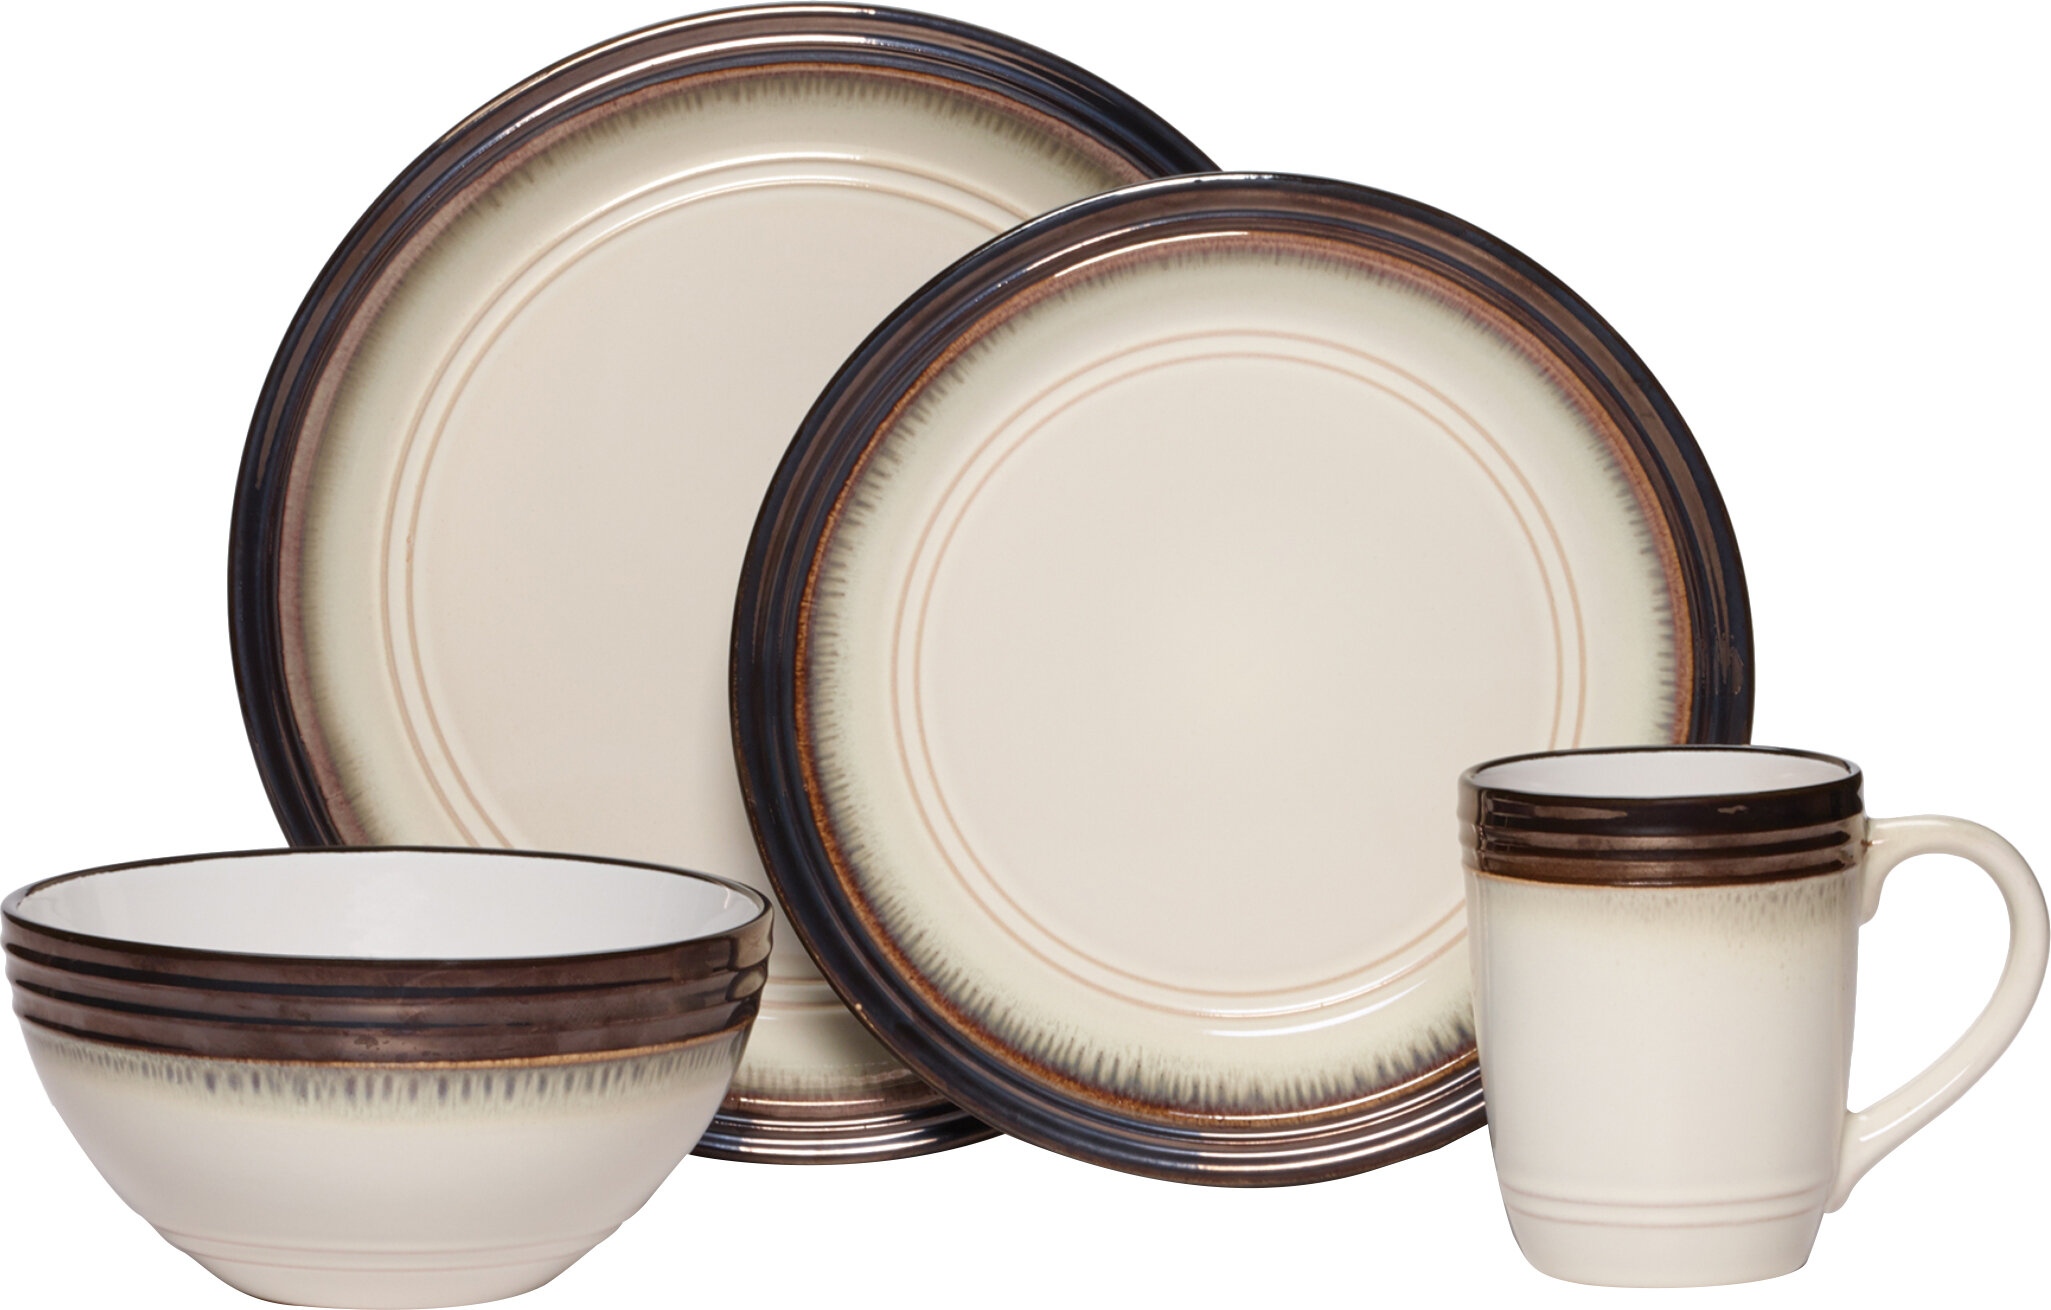 Mikasa Gourmet Basics Bailey 16 Piece Dinnerware Set Service for 4 u0026 Reviews | Wayfair  sc 1 st  Wayfair & Mikasa Gourmet Basics Bailey 16 Piece Dinnerware Set Service for 4 ...